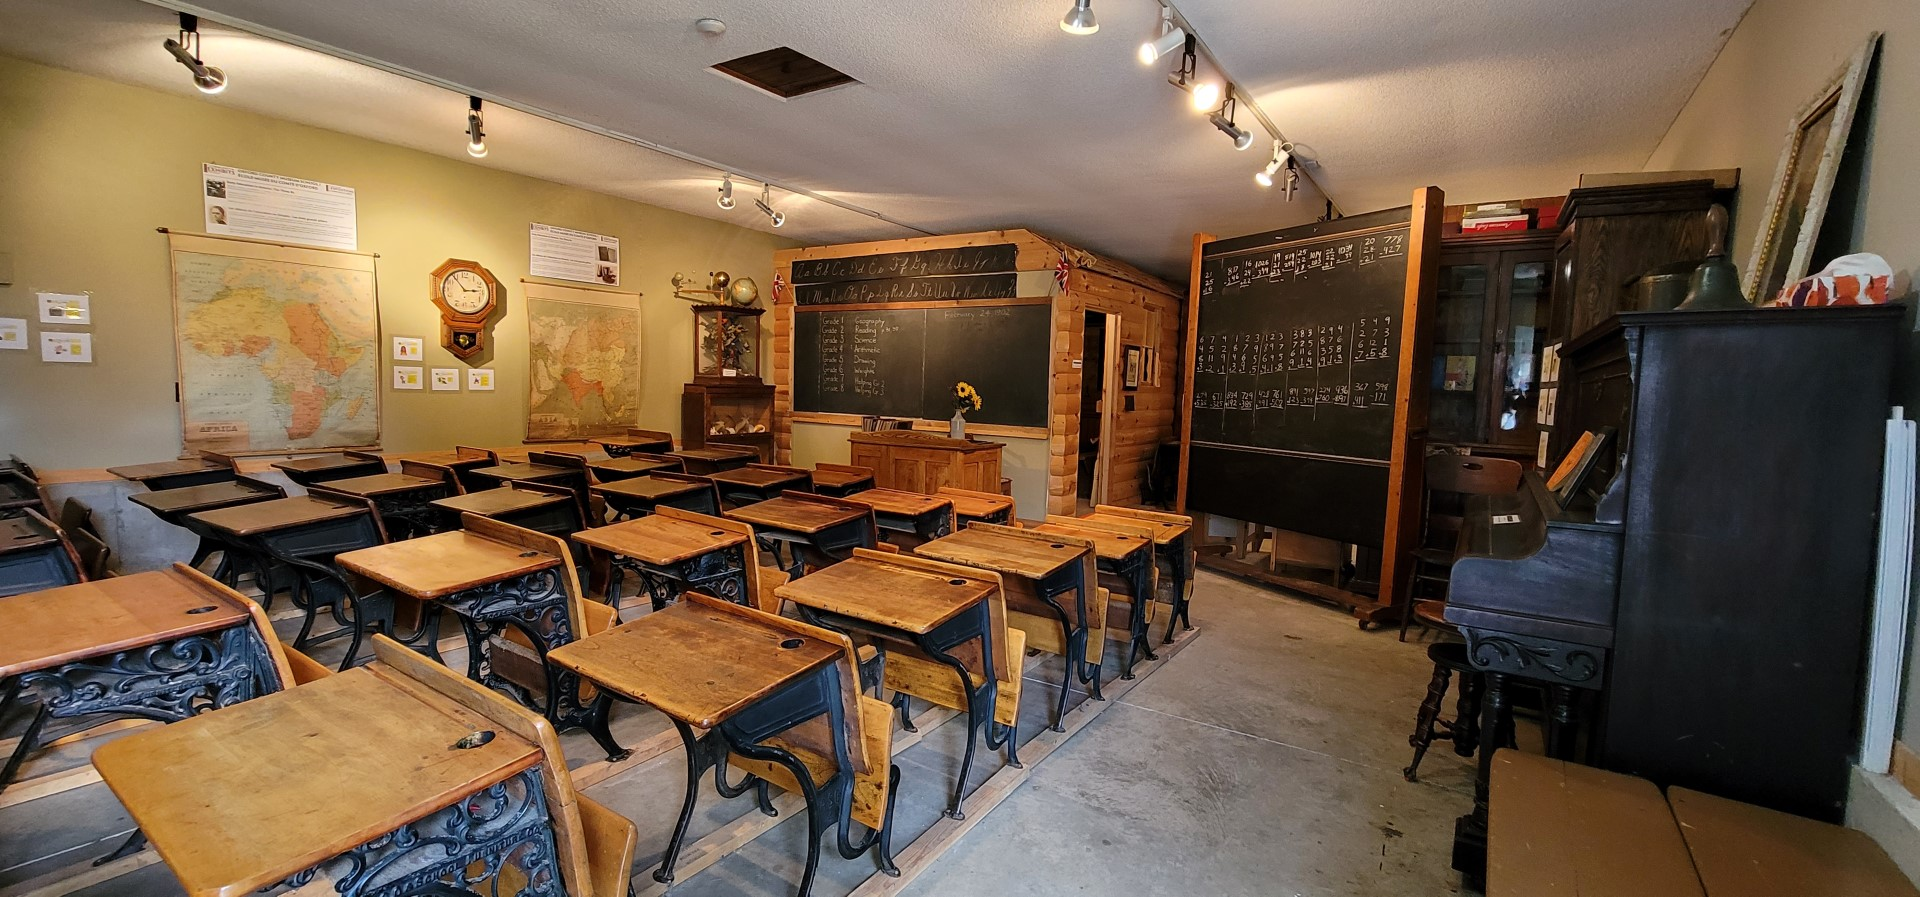 Classroom at Cheese Museum Canada